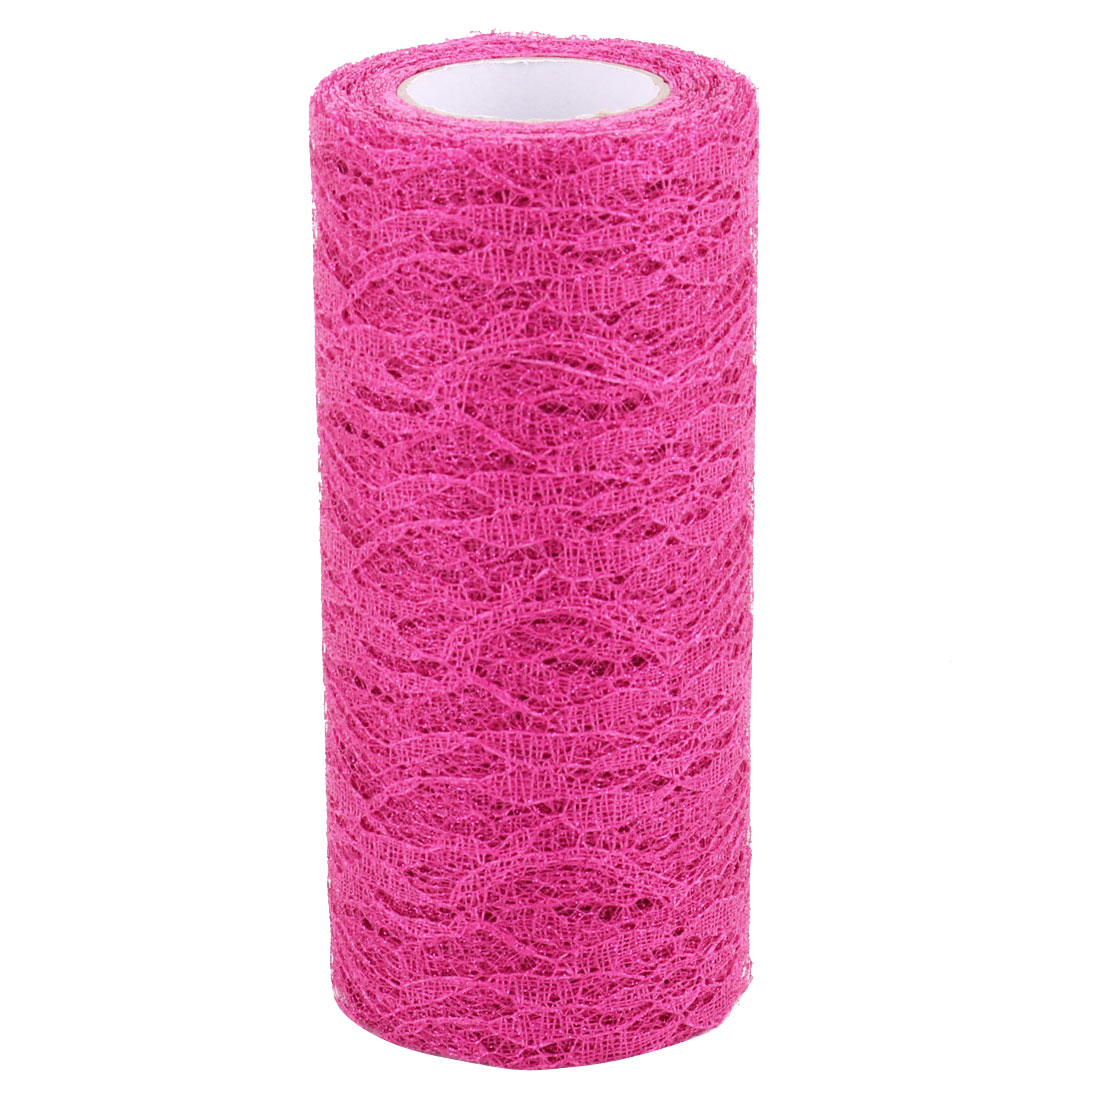 Home Party Polyester Decoration Tulle Spool Roll Fuchsia 6 Inch x 10 Yards